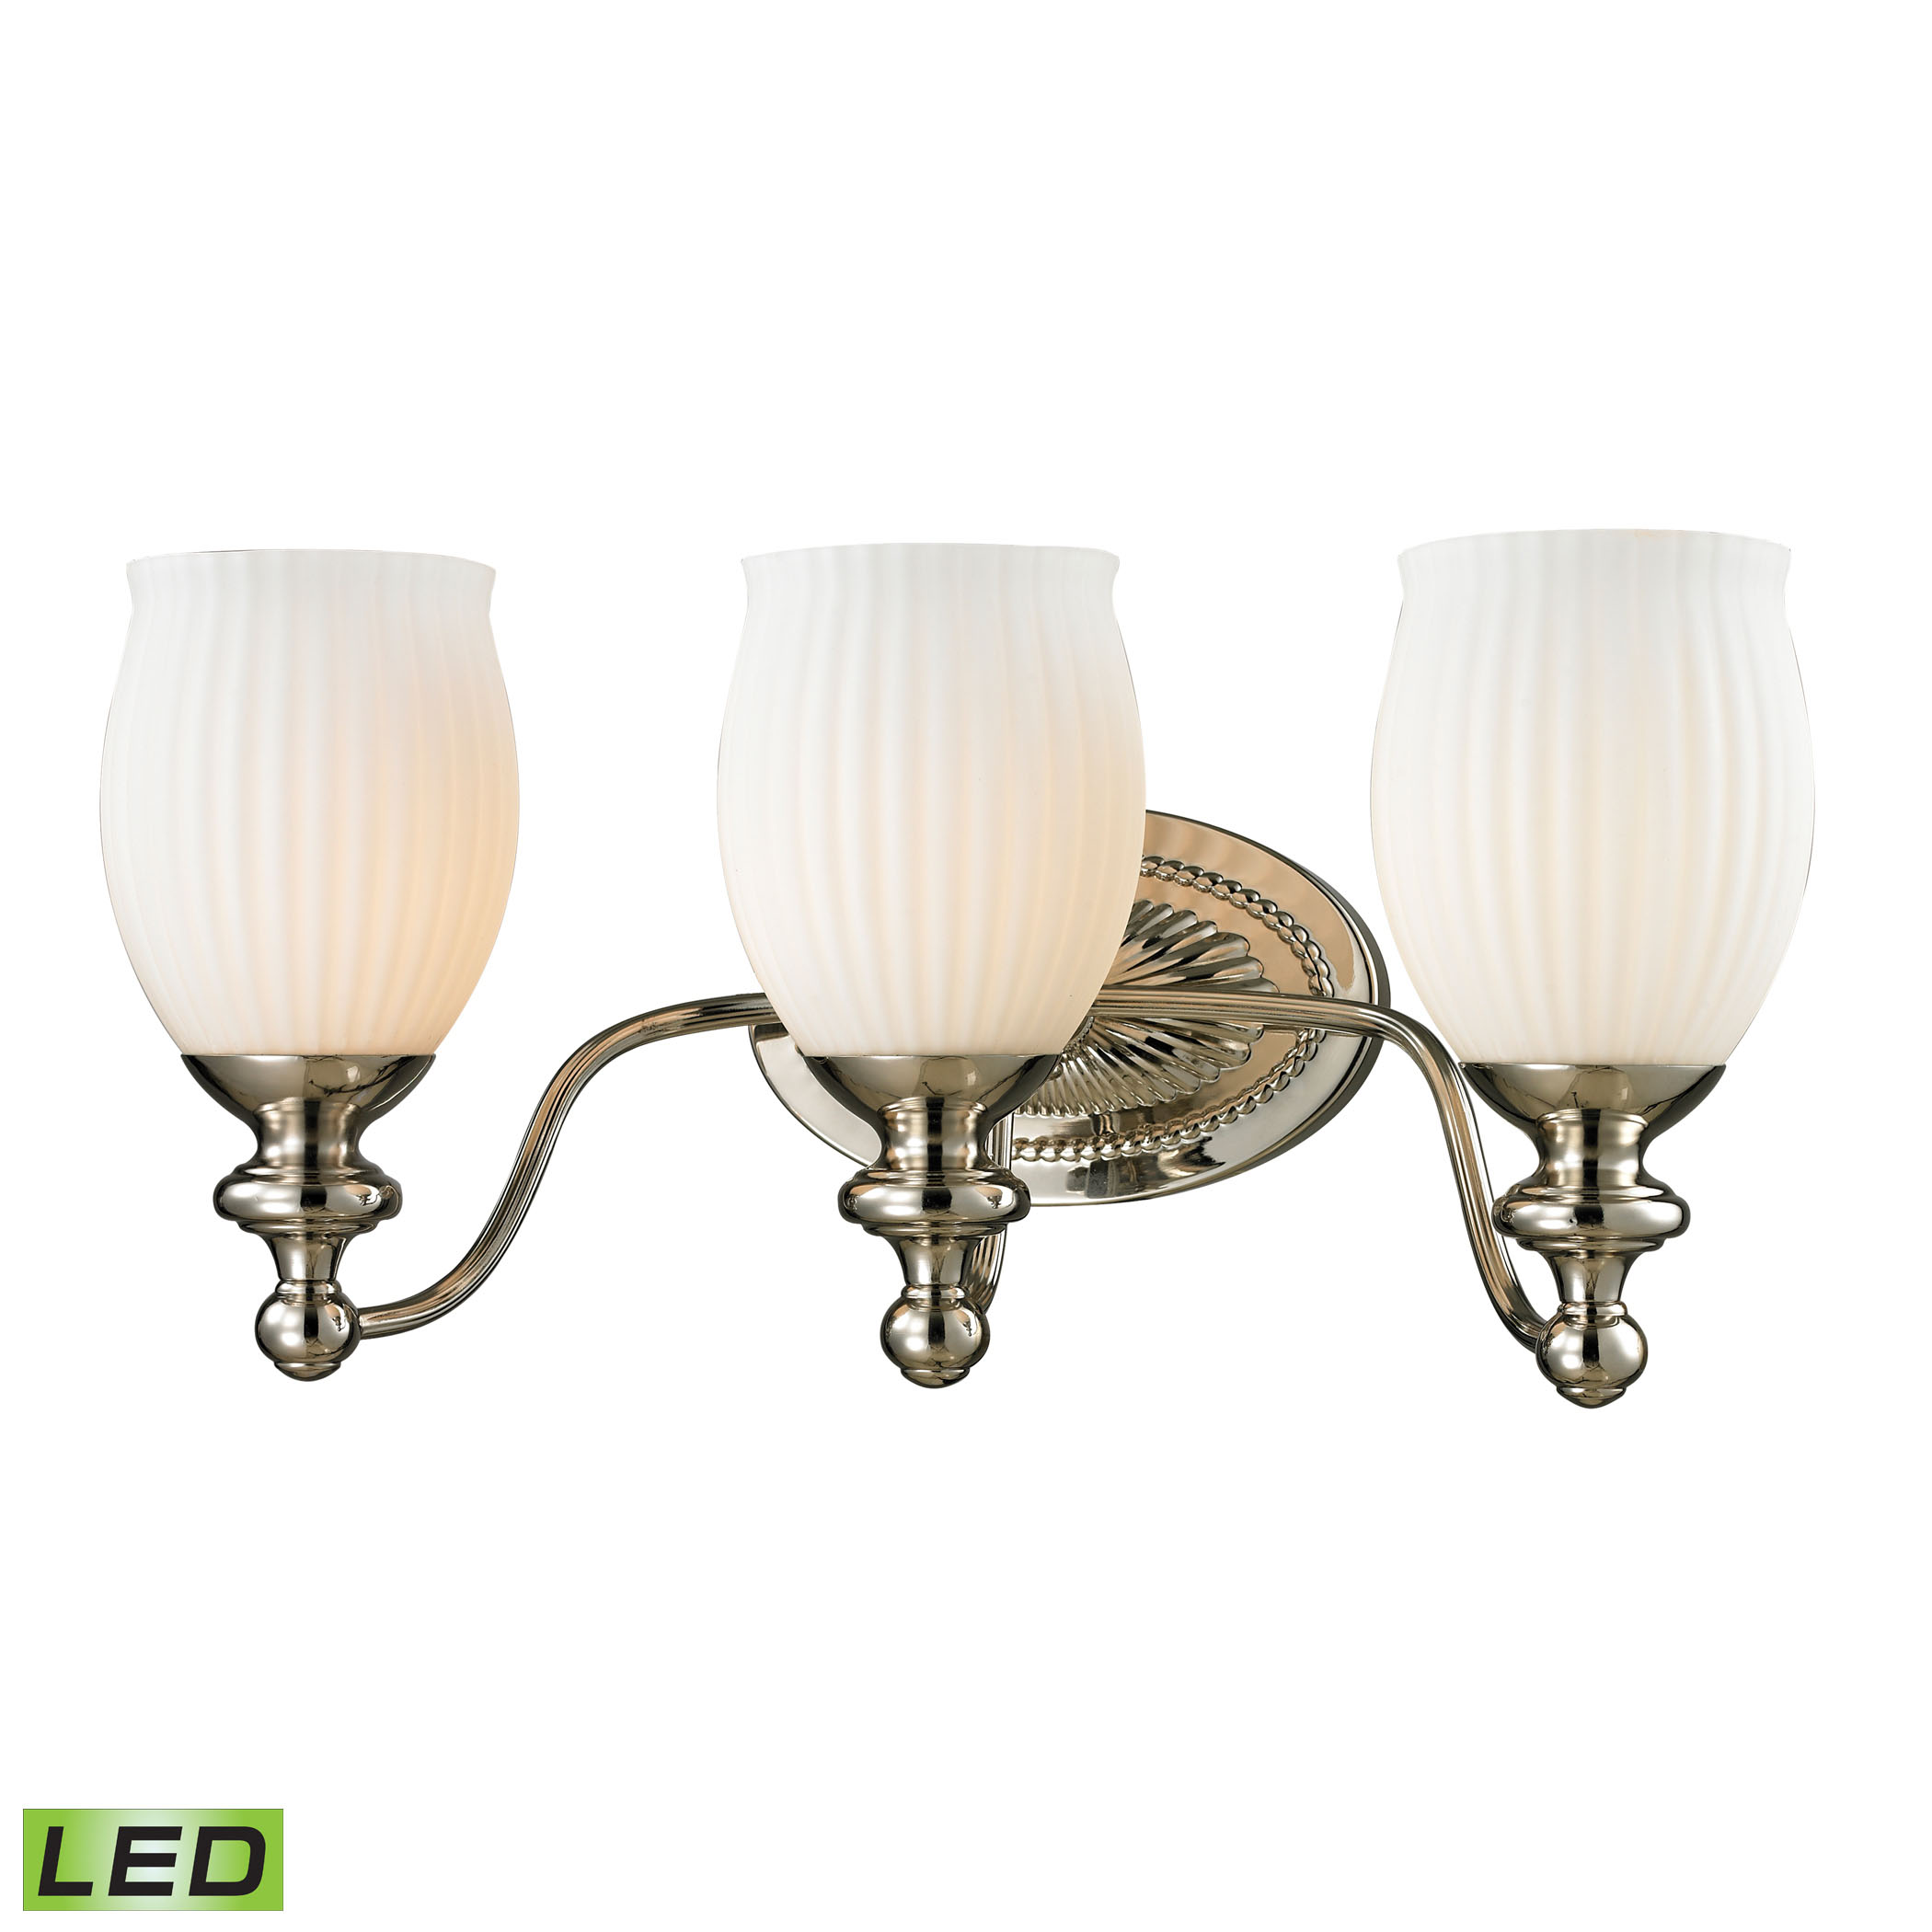 Park Ridge Collection 3 Light Bath in Polished Nickel - LED, 800 Lumens (2400 Lumens Total) with Full